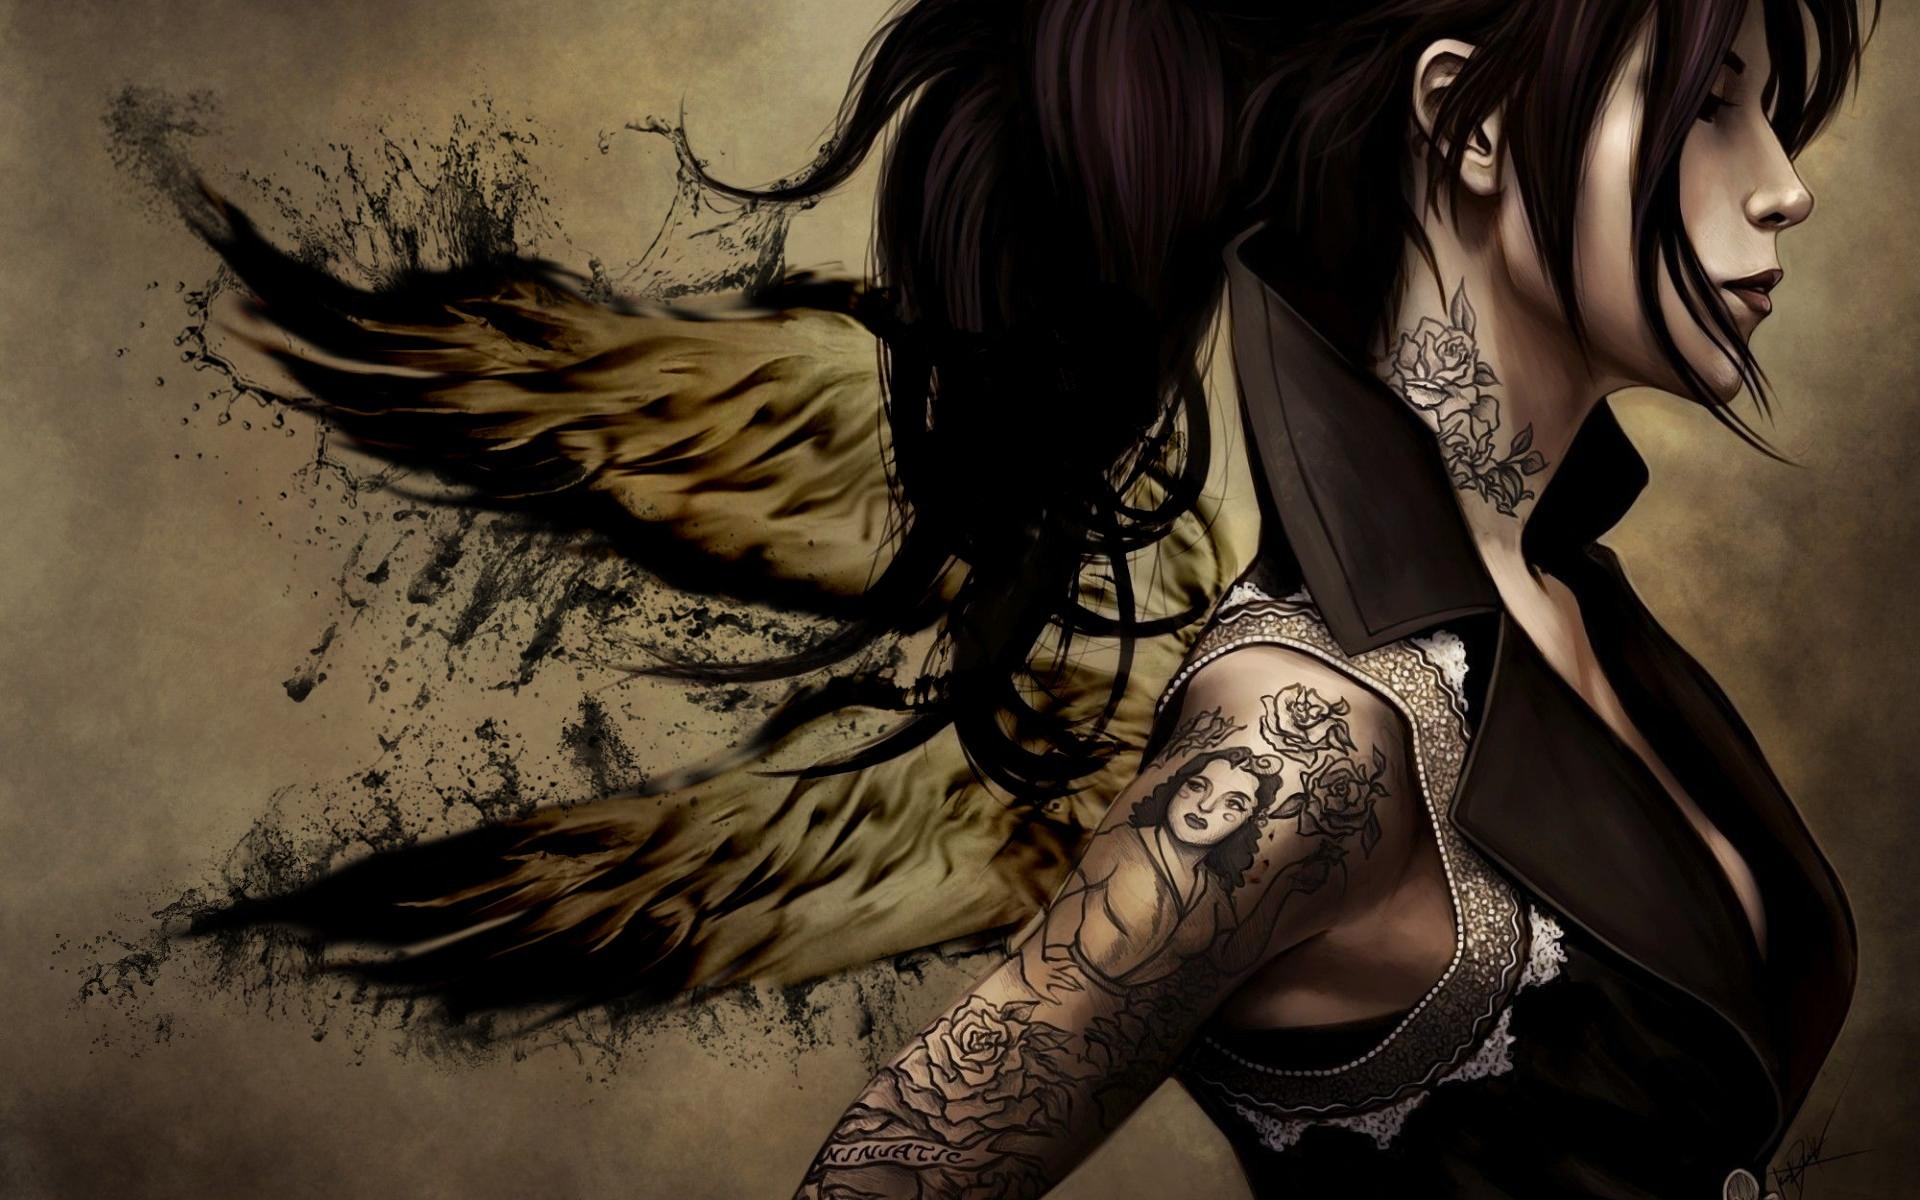 Res: 1920x1200, Artistic - Tattoo Wallpaper